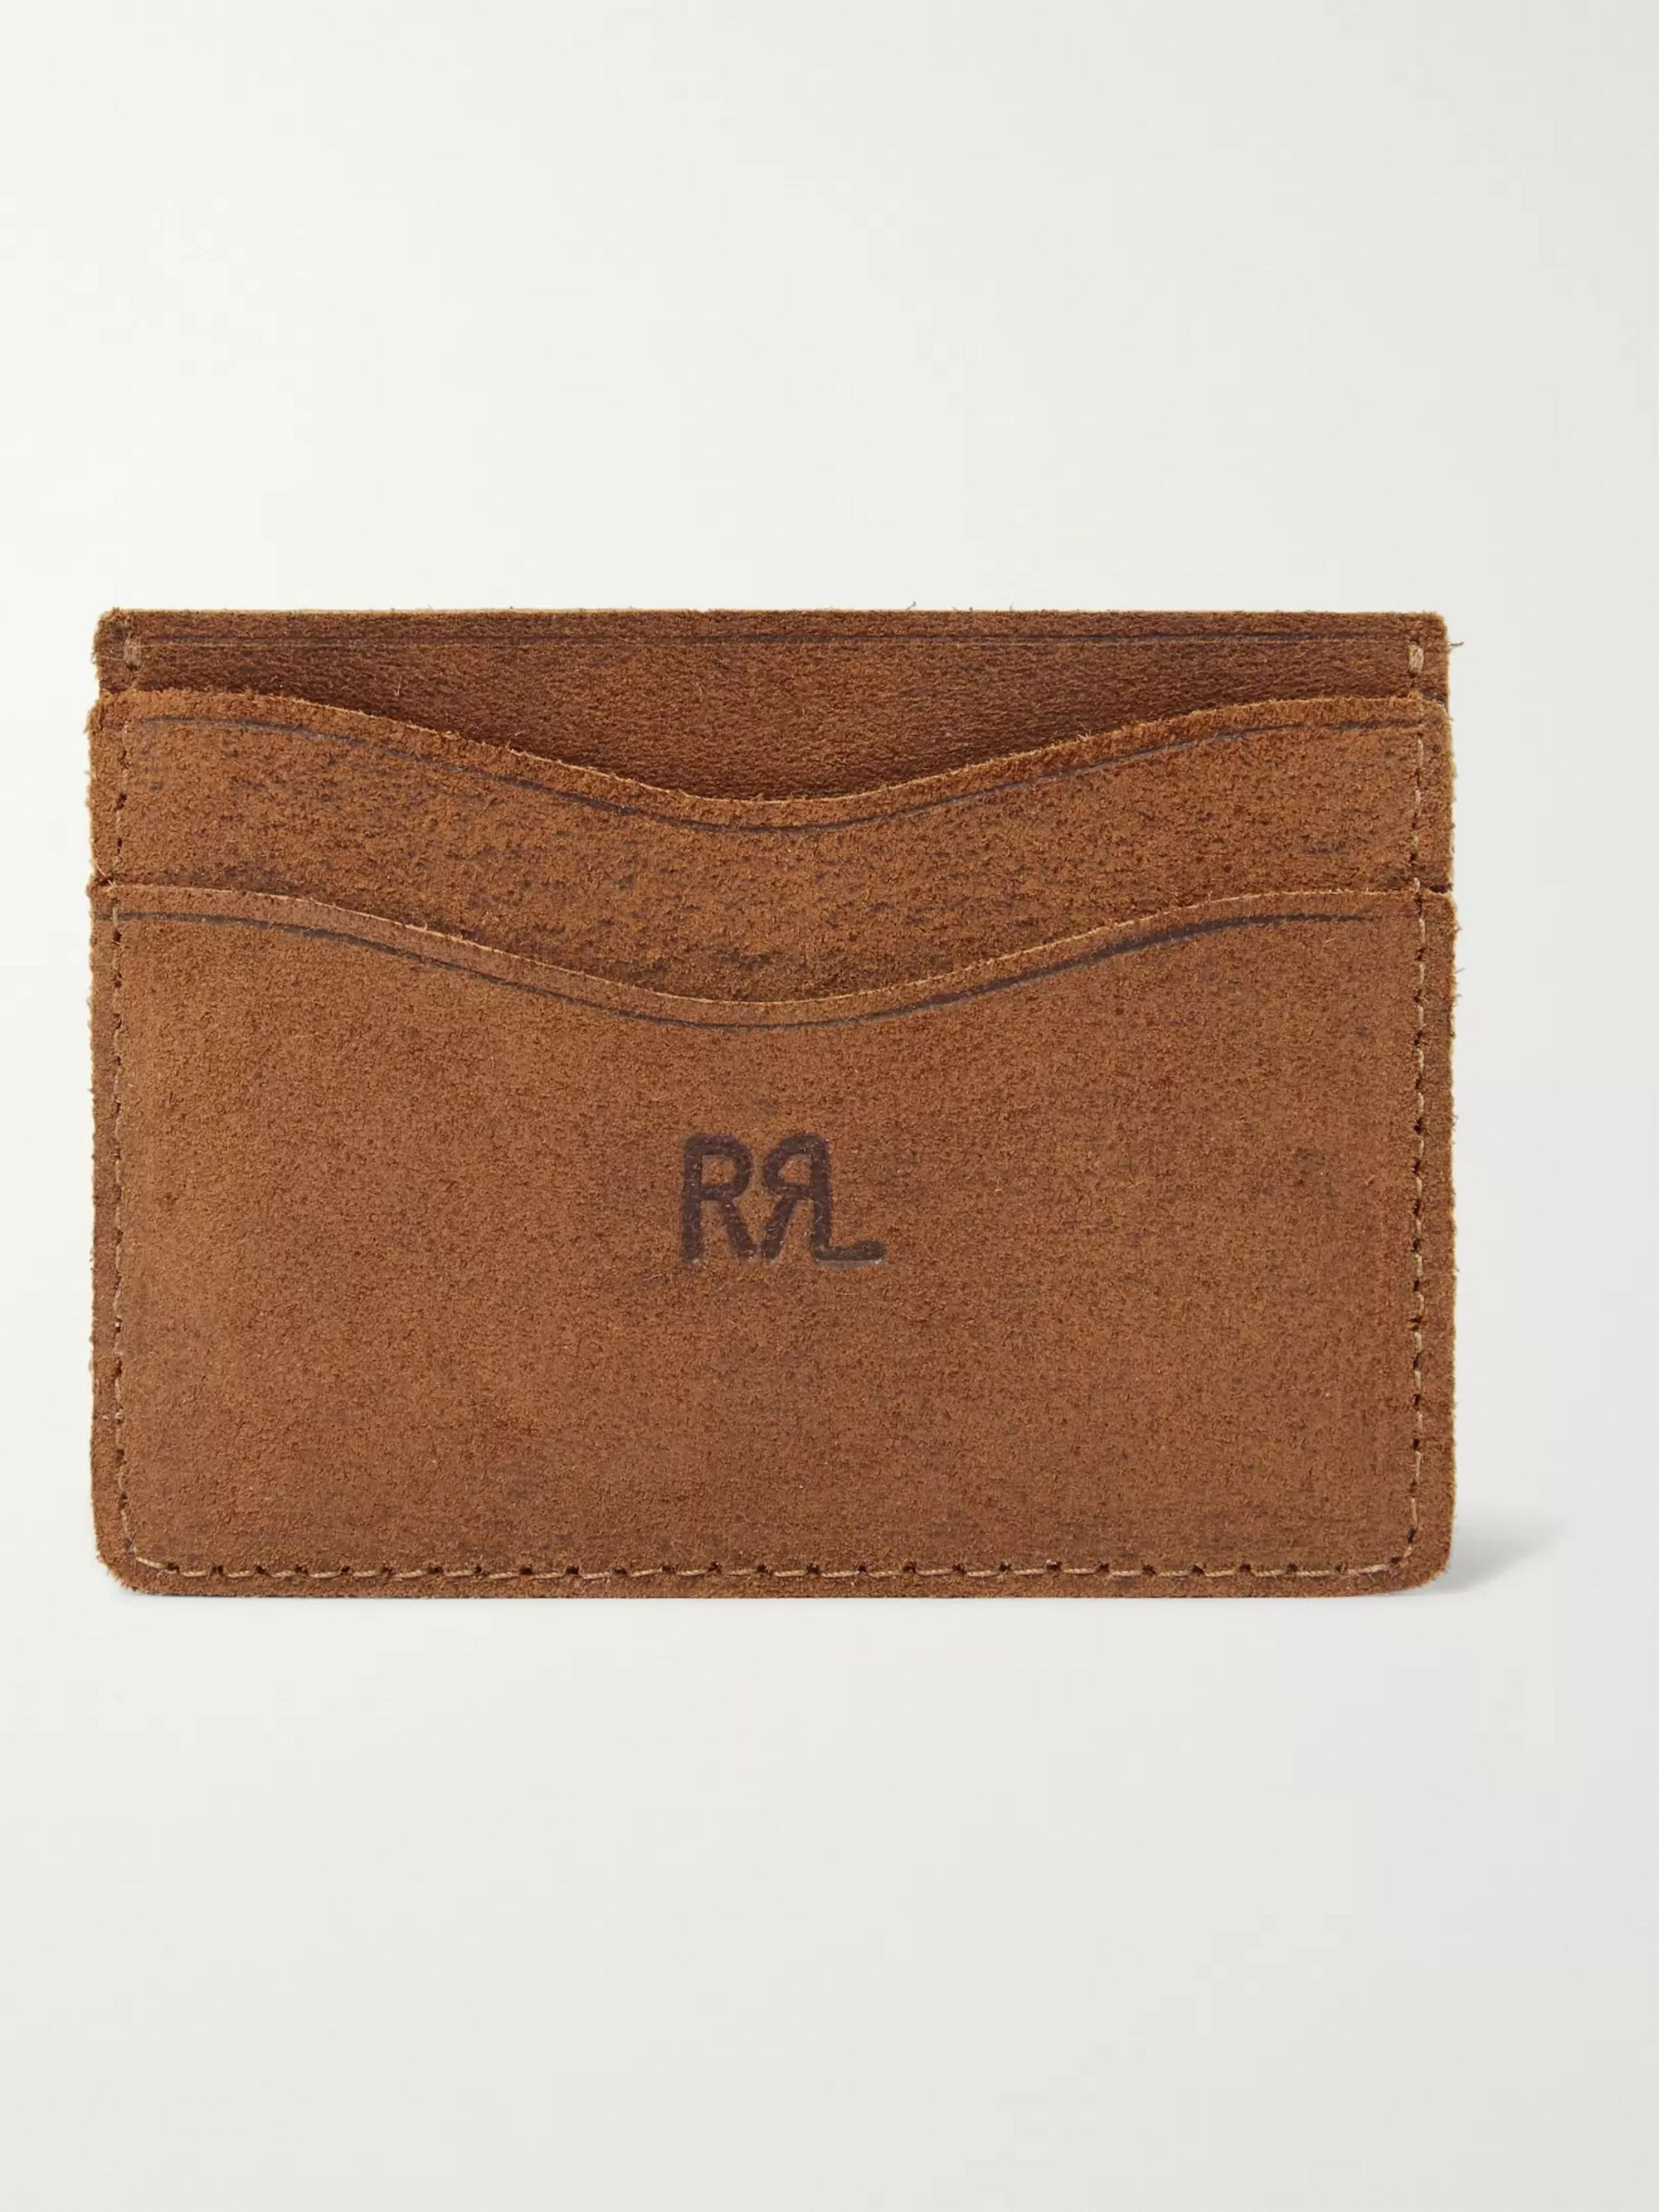 Roughout Leather Cardholder by Rrl